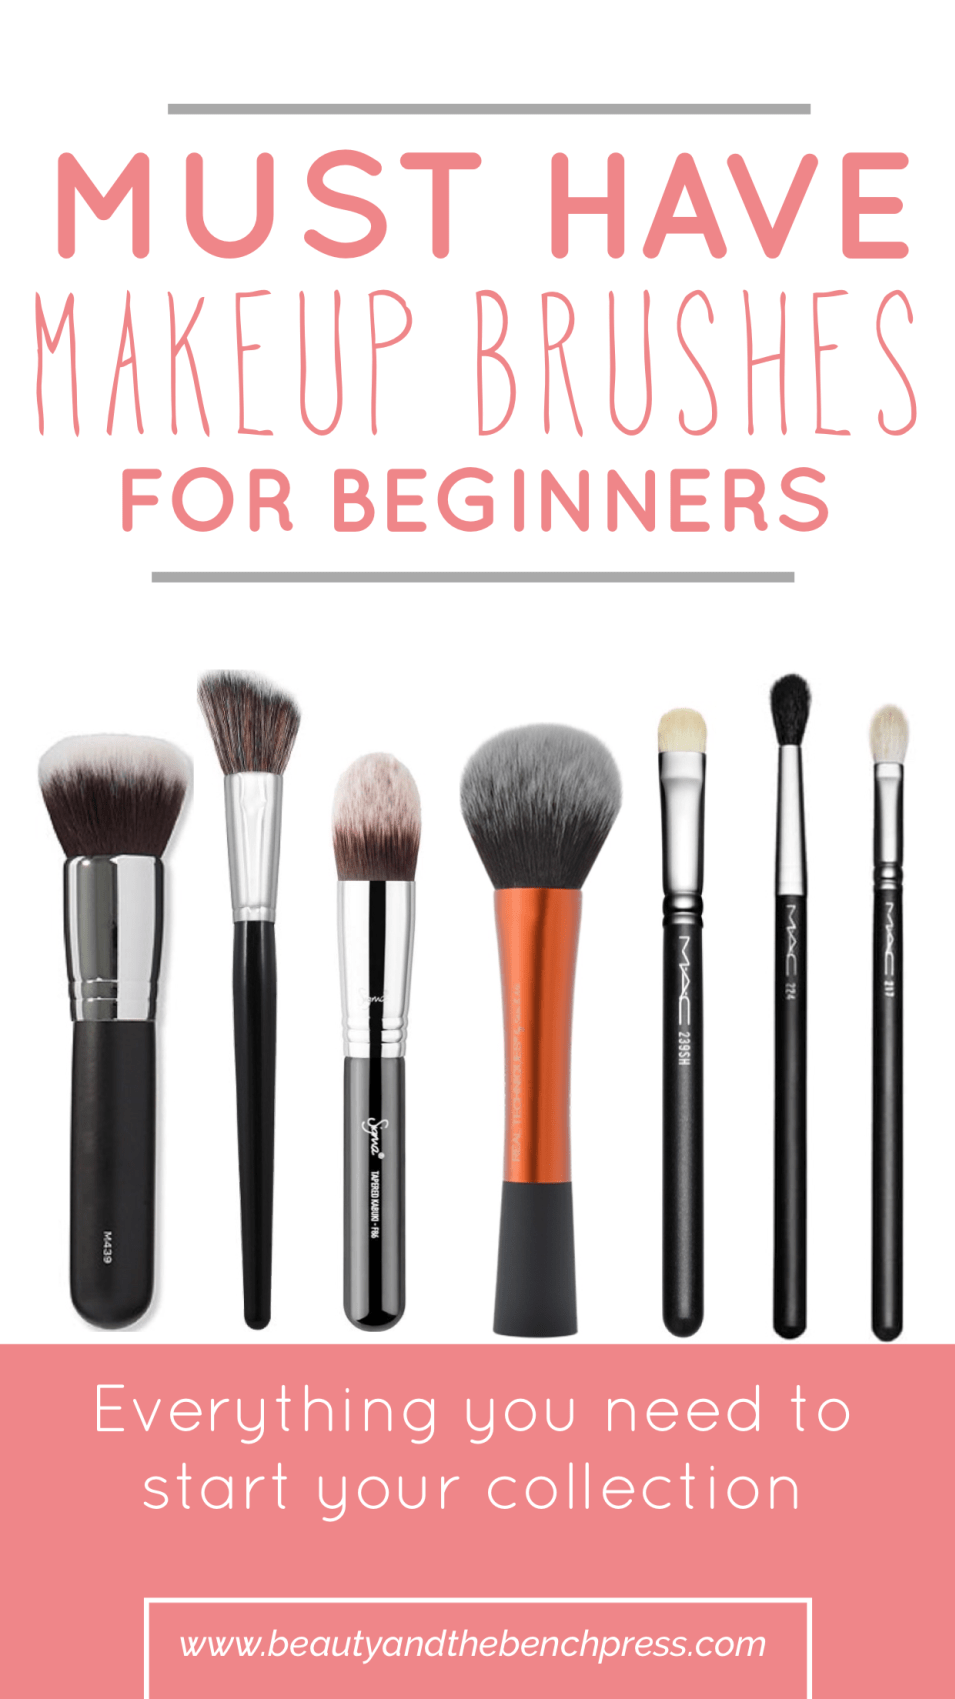 Must Have Makeup Brushes for Beginners (With images) Smink